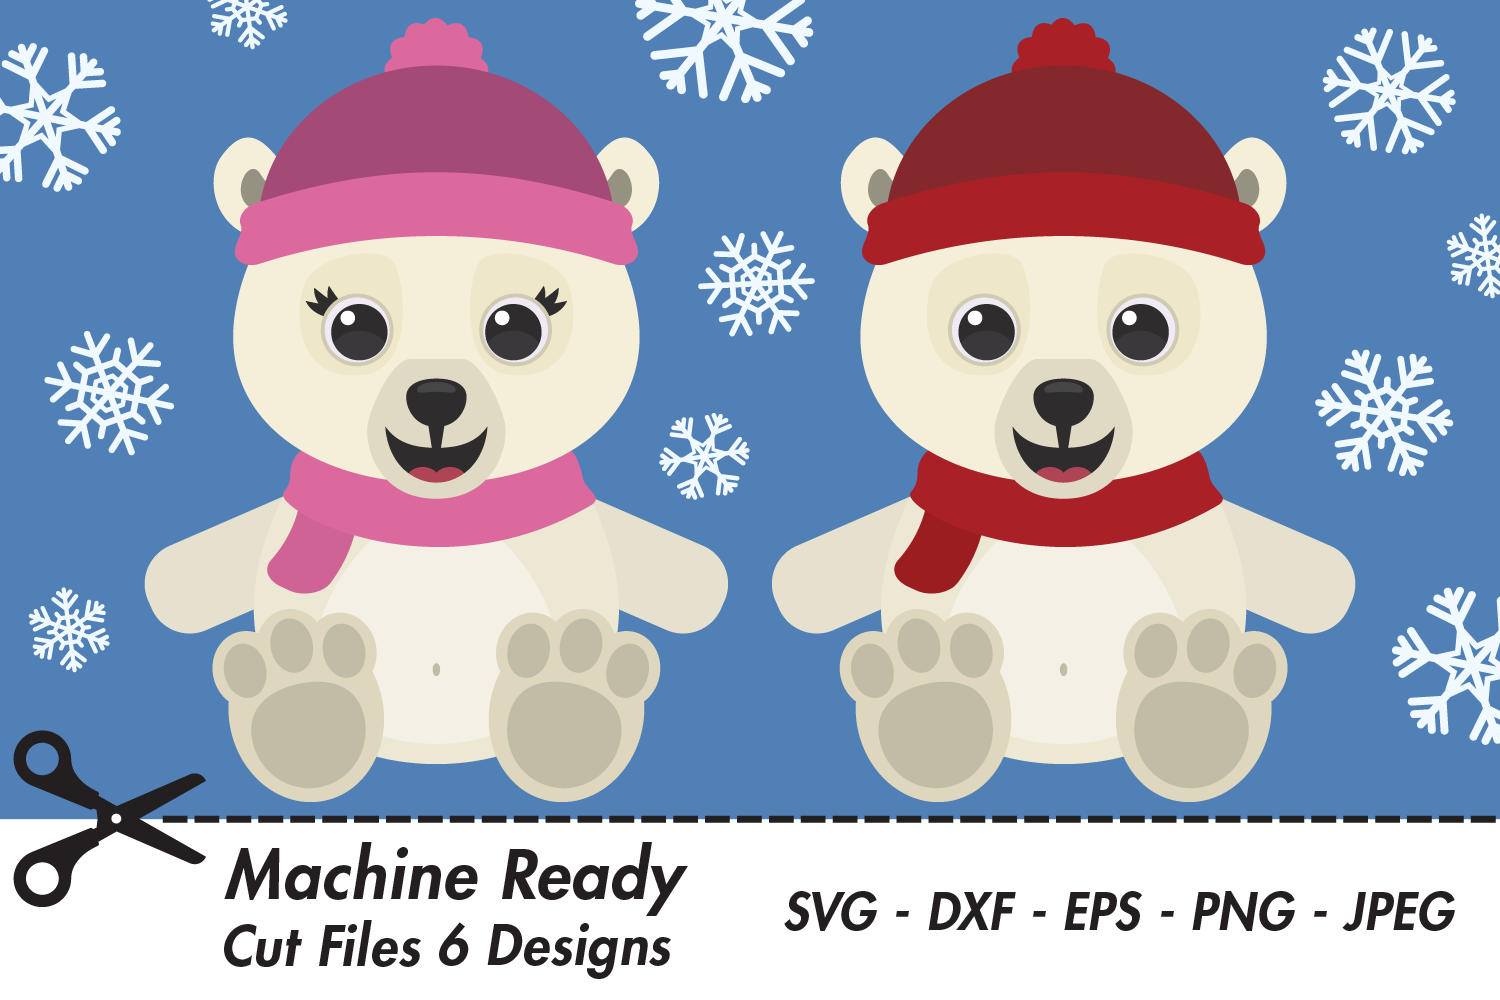 Download Free Cute Polar Bears With Snowflakes Graphic By Captaincreative for Cricut Explore, Silhouette and other cutting machines.